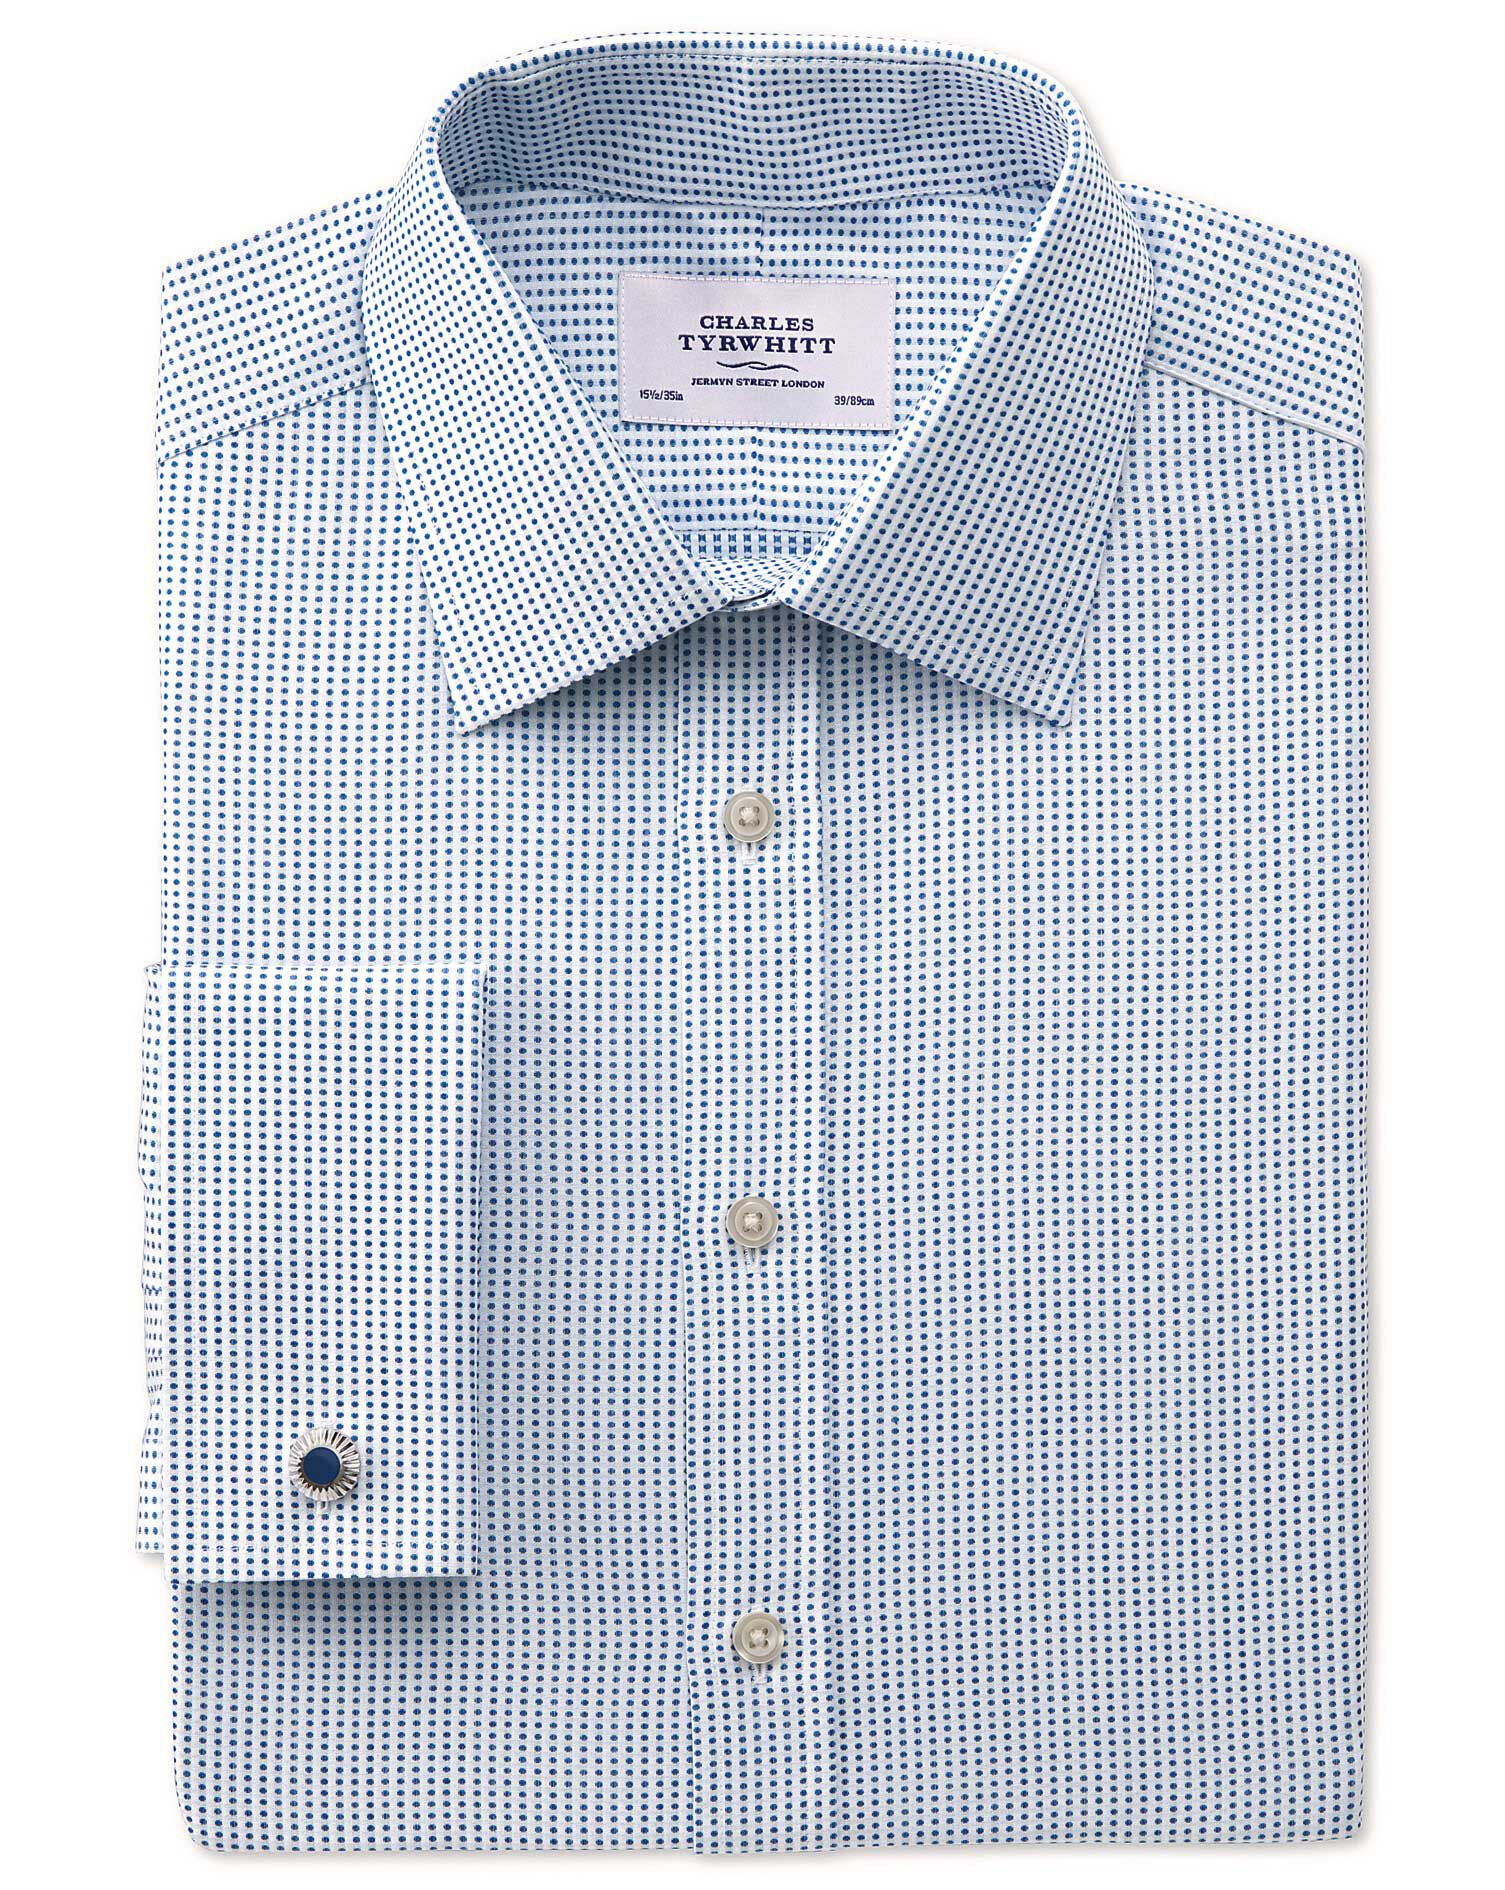 Classic Fit Pima Cotton Double-Faced Navy Formal Shirt Single Cuff Size 16.5/35 by Charles Tyrwhitt